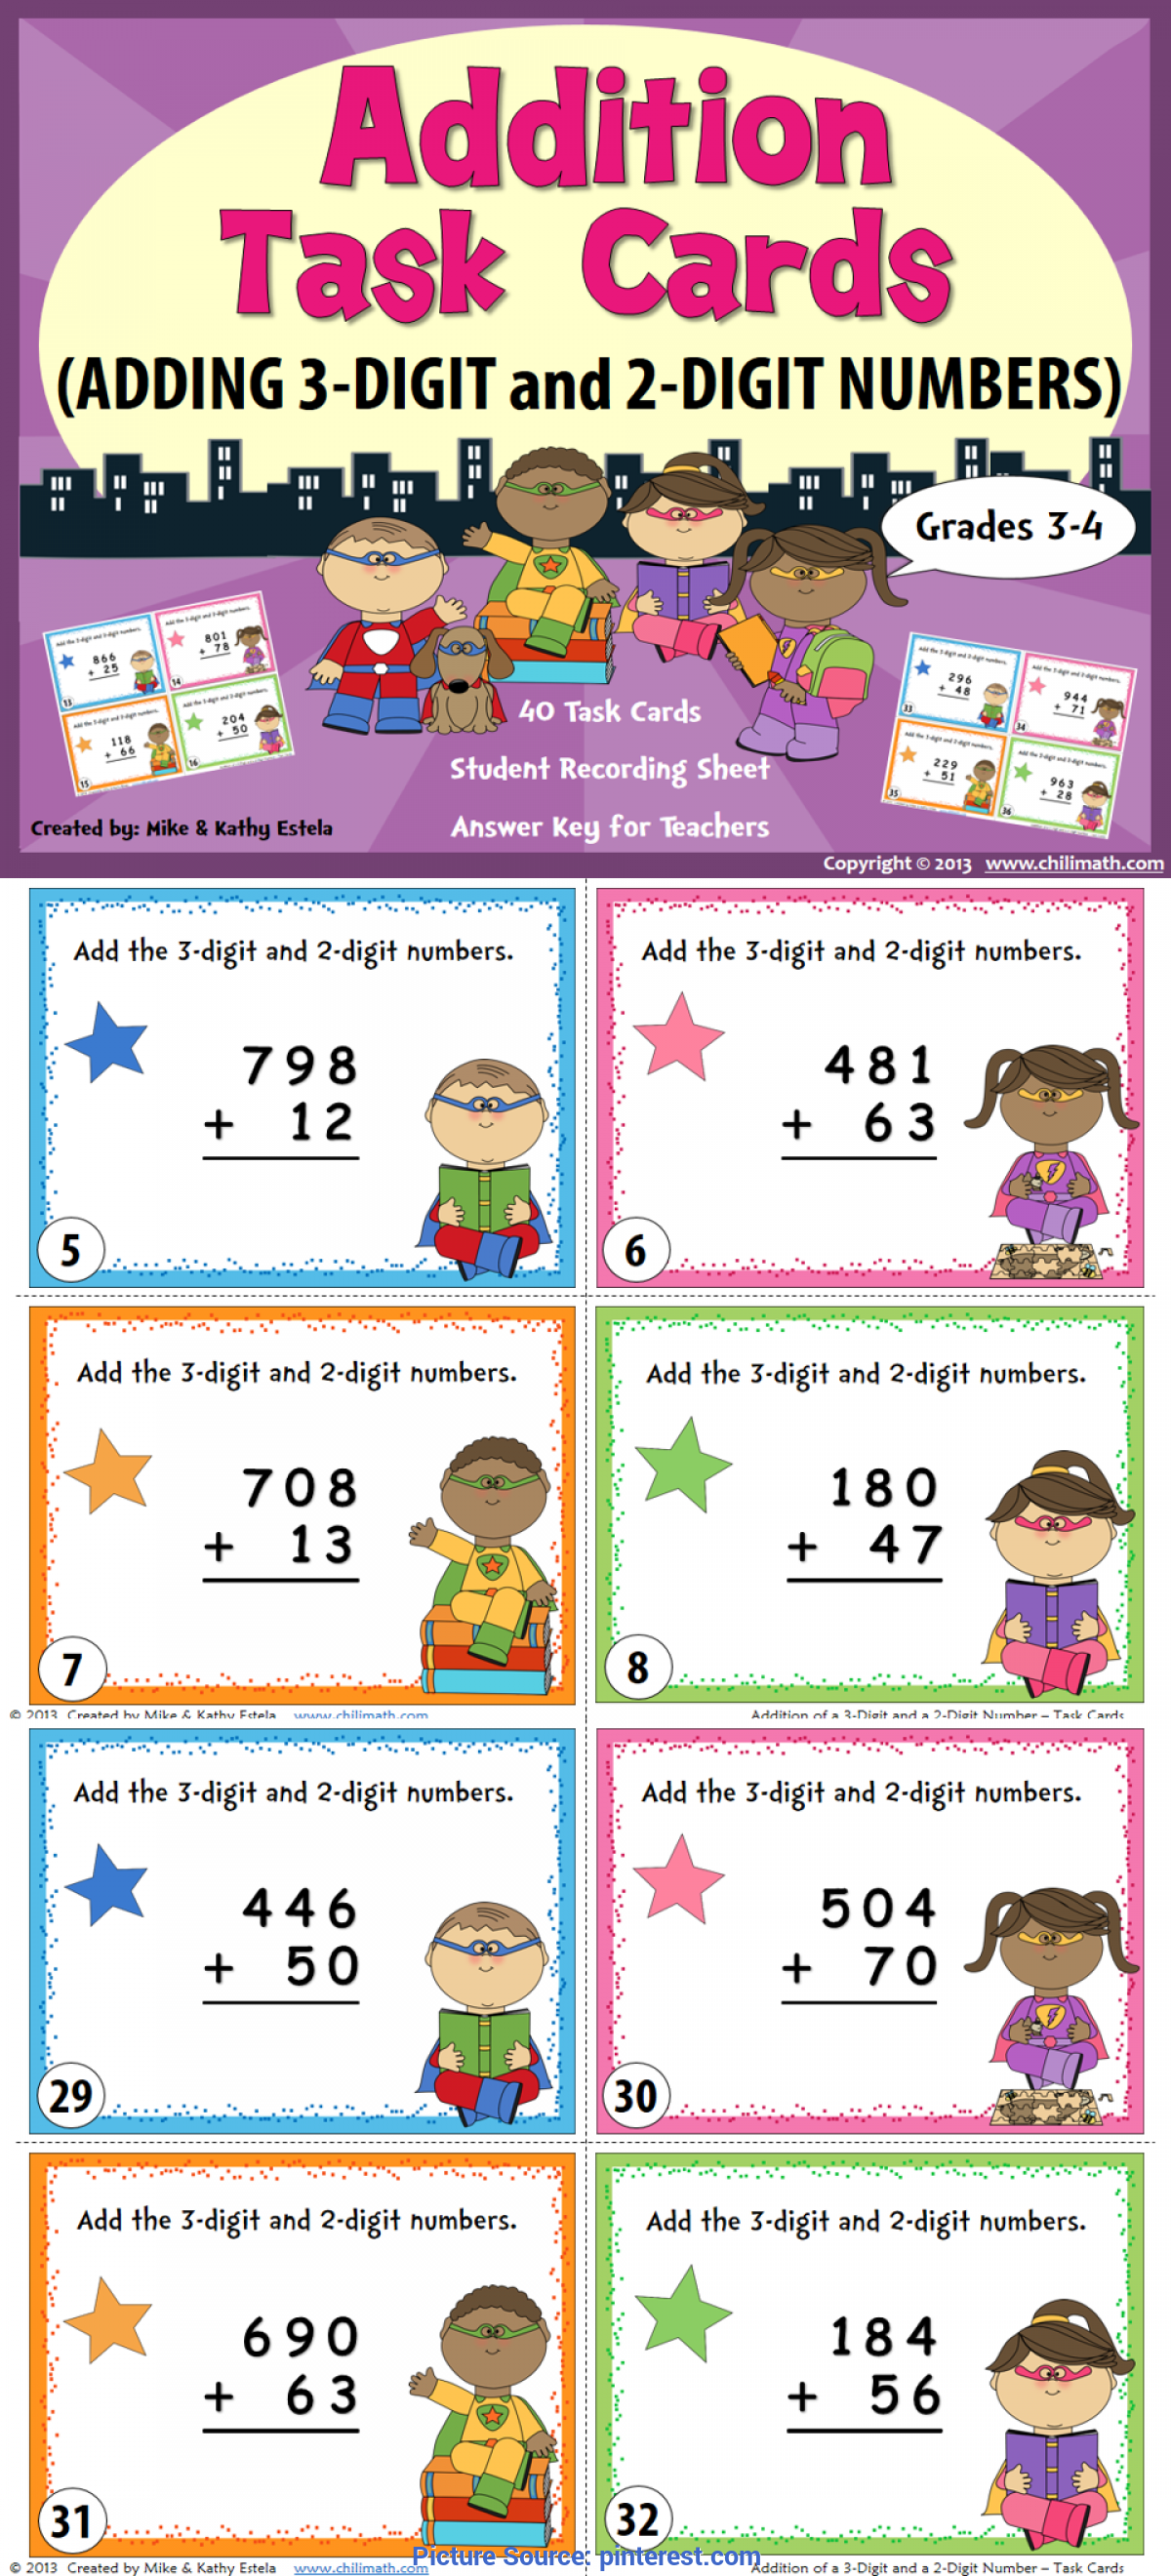 Complex Addition Lesson Plan For Grade 2 Addition Task Cards | Number, Math And Elementary